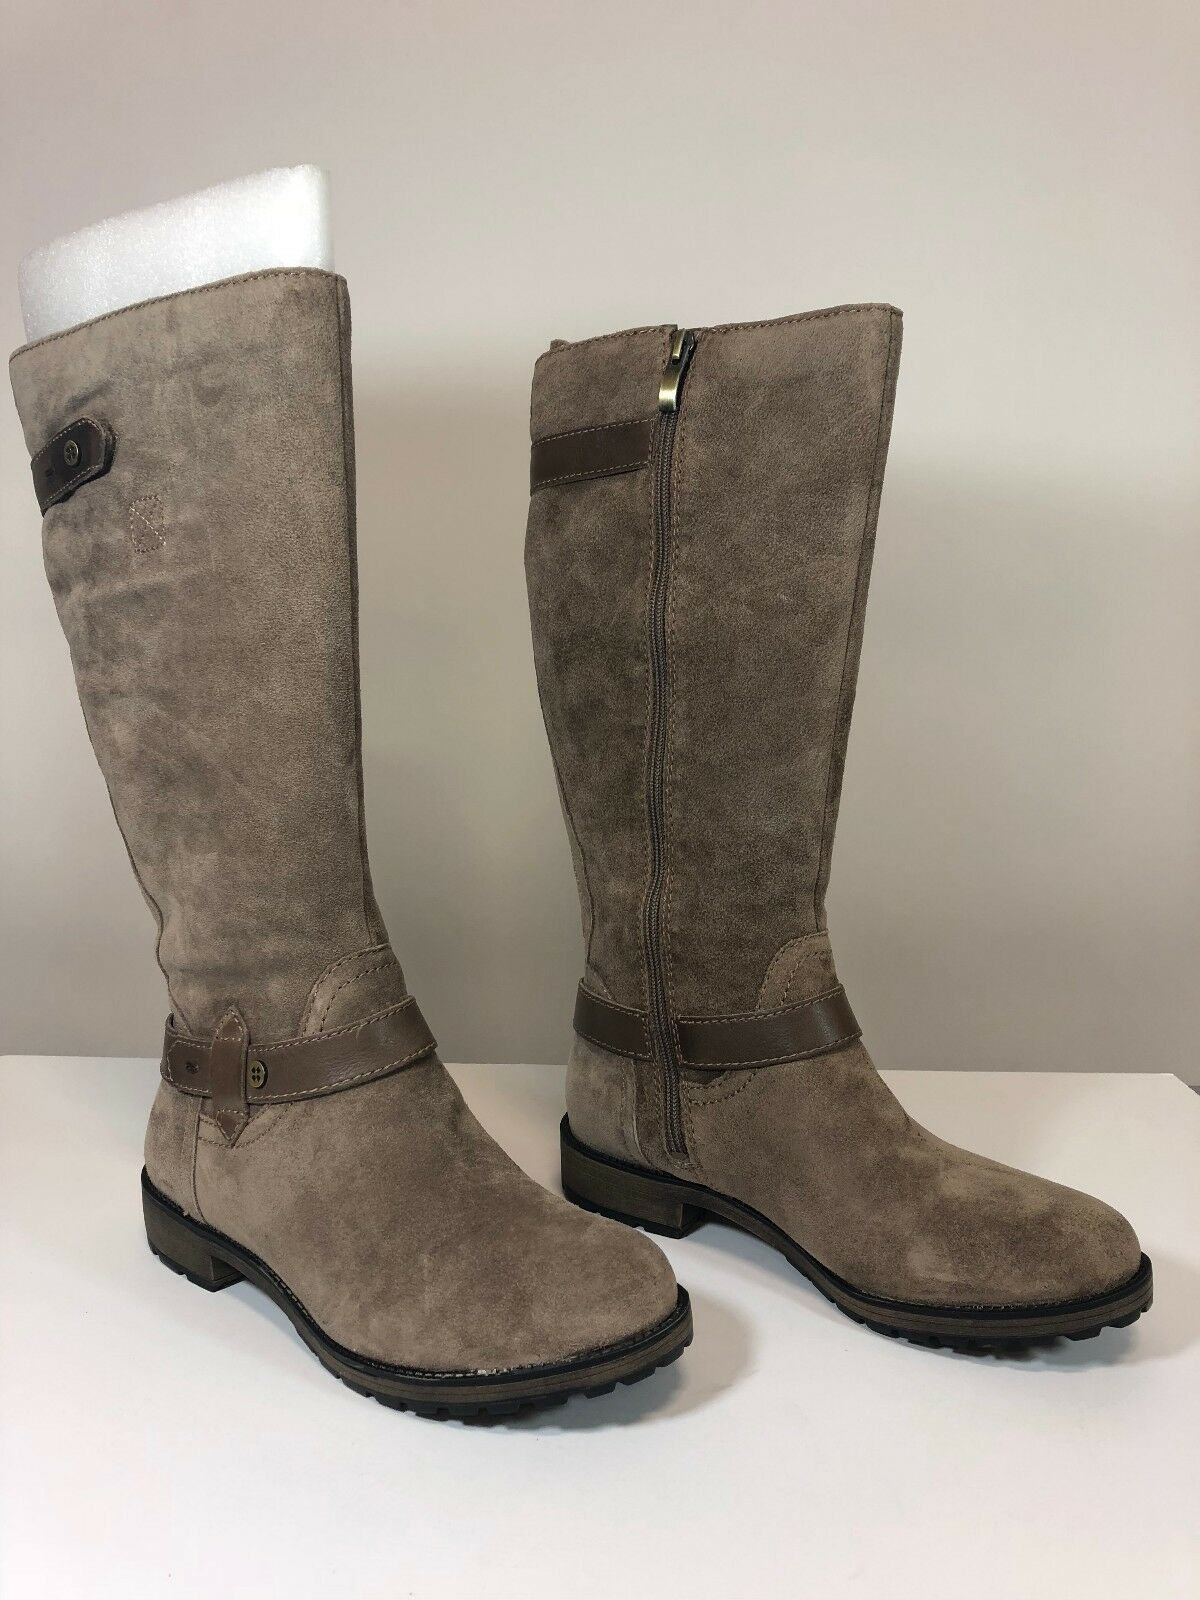 Naturalizer Womens Tanita Riding Boots, Taupe, 8.5WW Wide Size